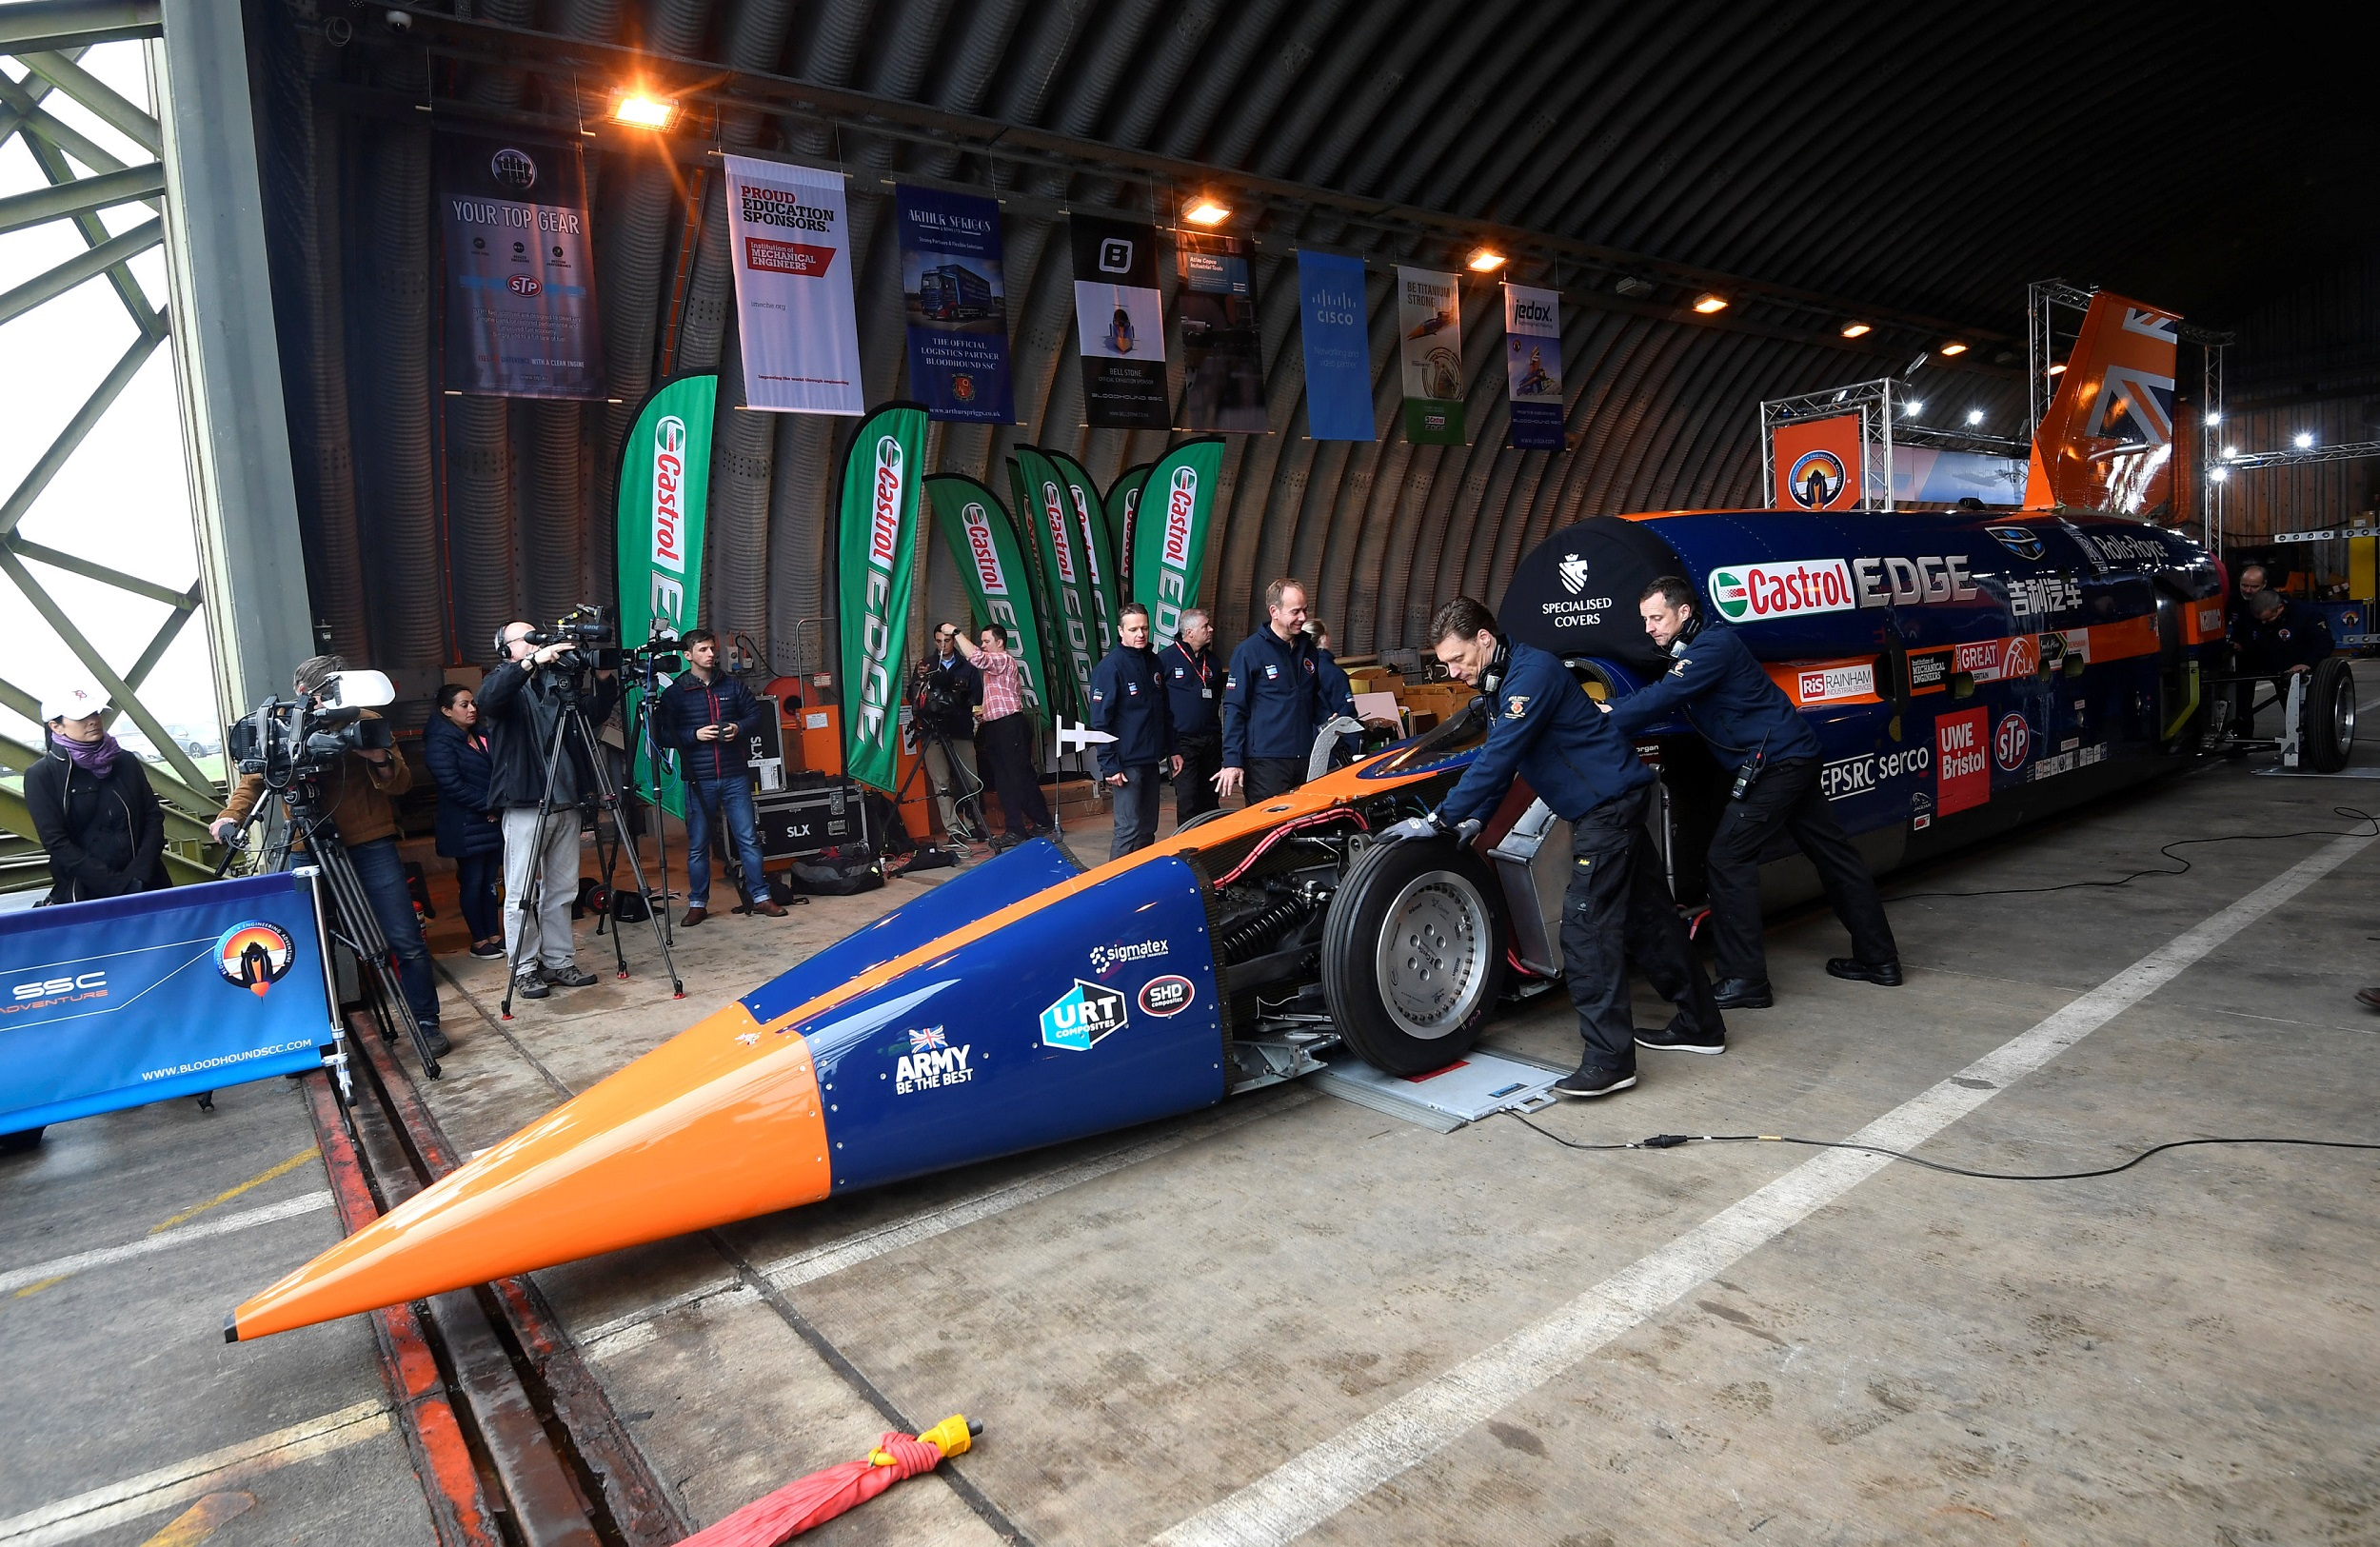 Web_Photo_SSC_Bloodhound_Super_Sonic_Car_20171026